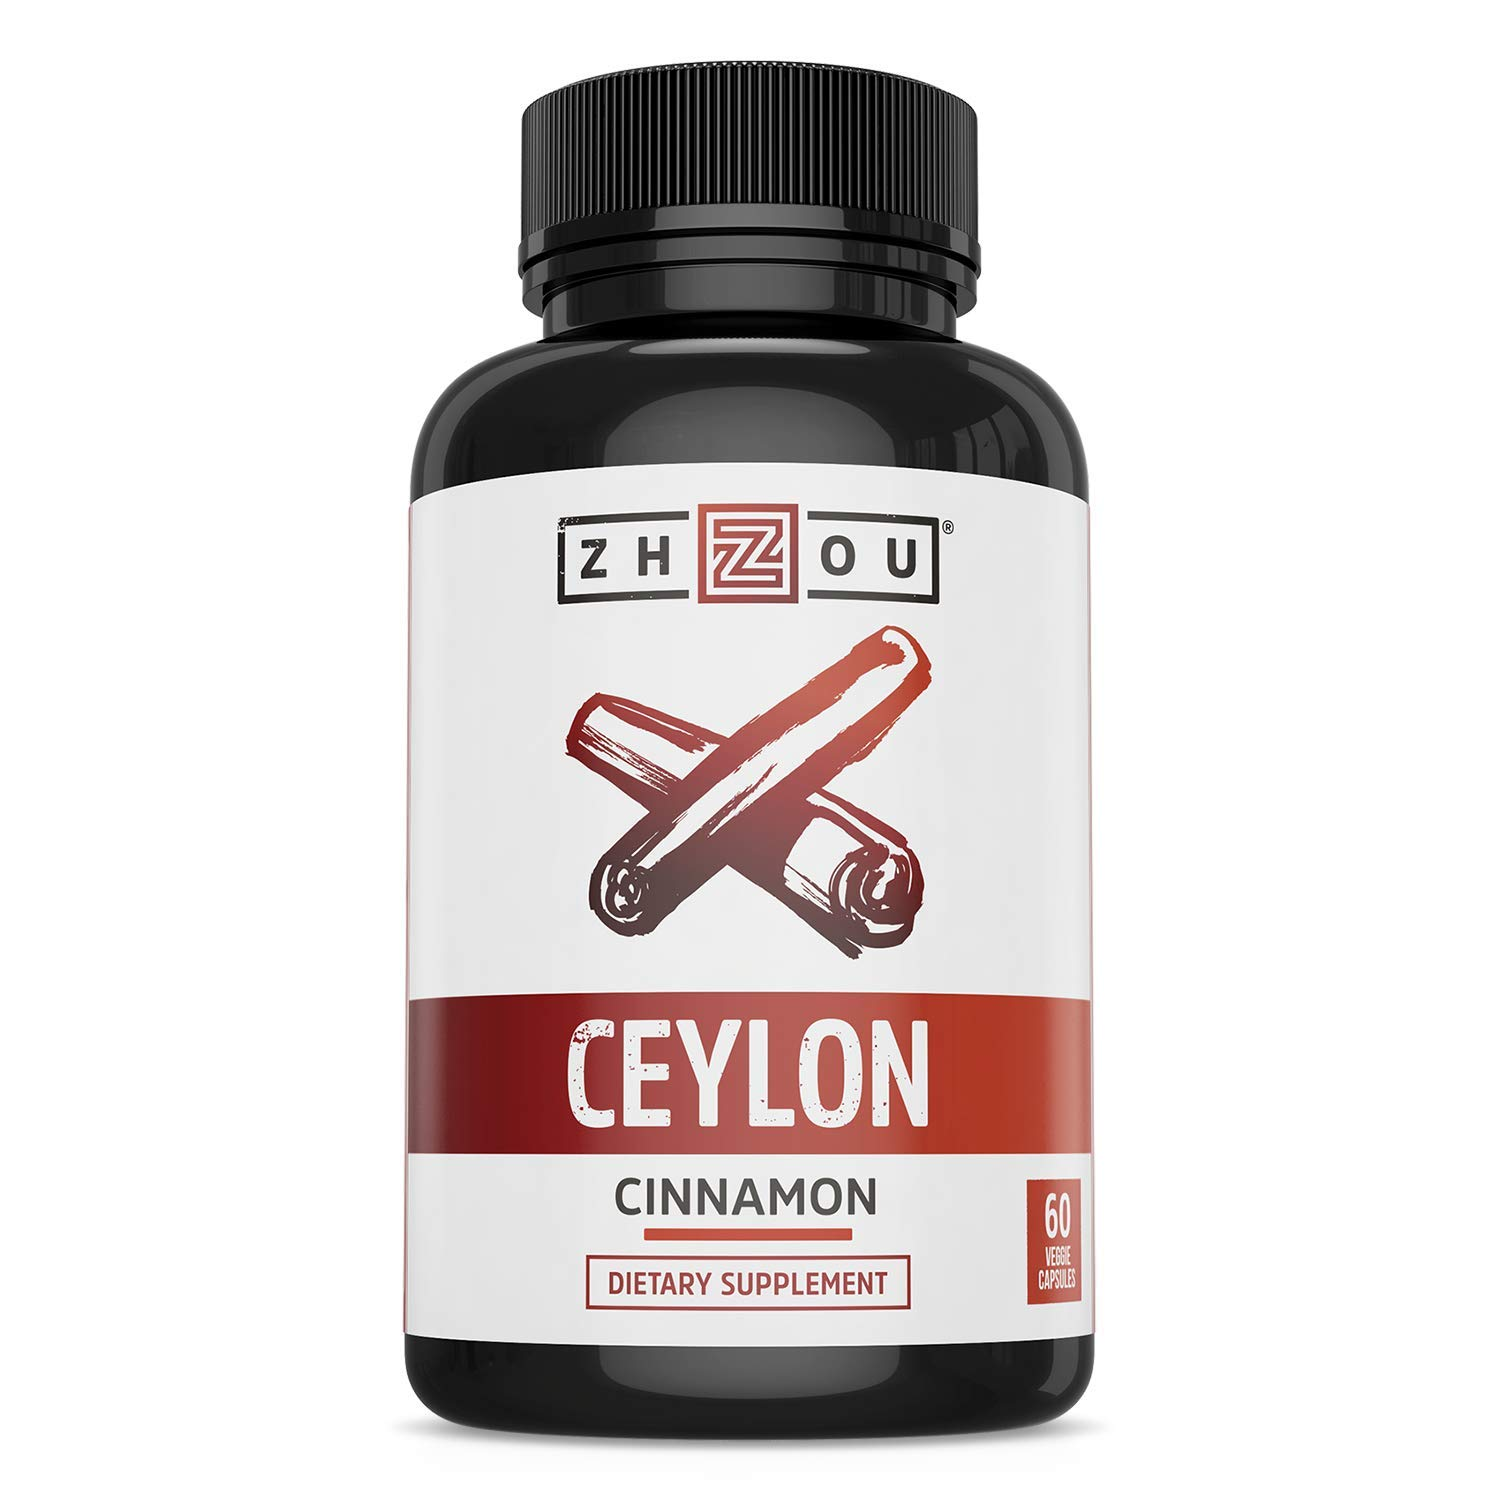 Ceylon Cinnamon Capsules – Designed to Support Blood Sugar, Heart Health and Joint Mobility – ' True Cinnamon ' Native…